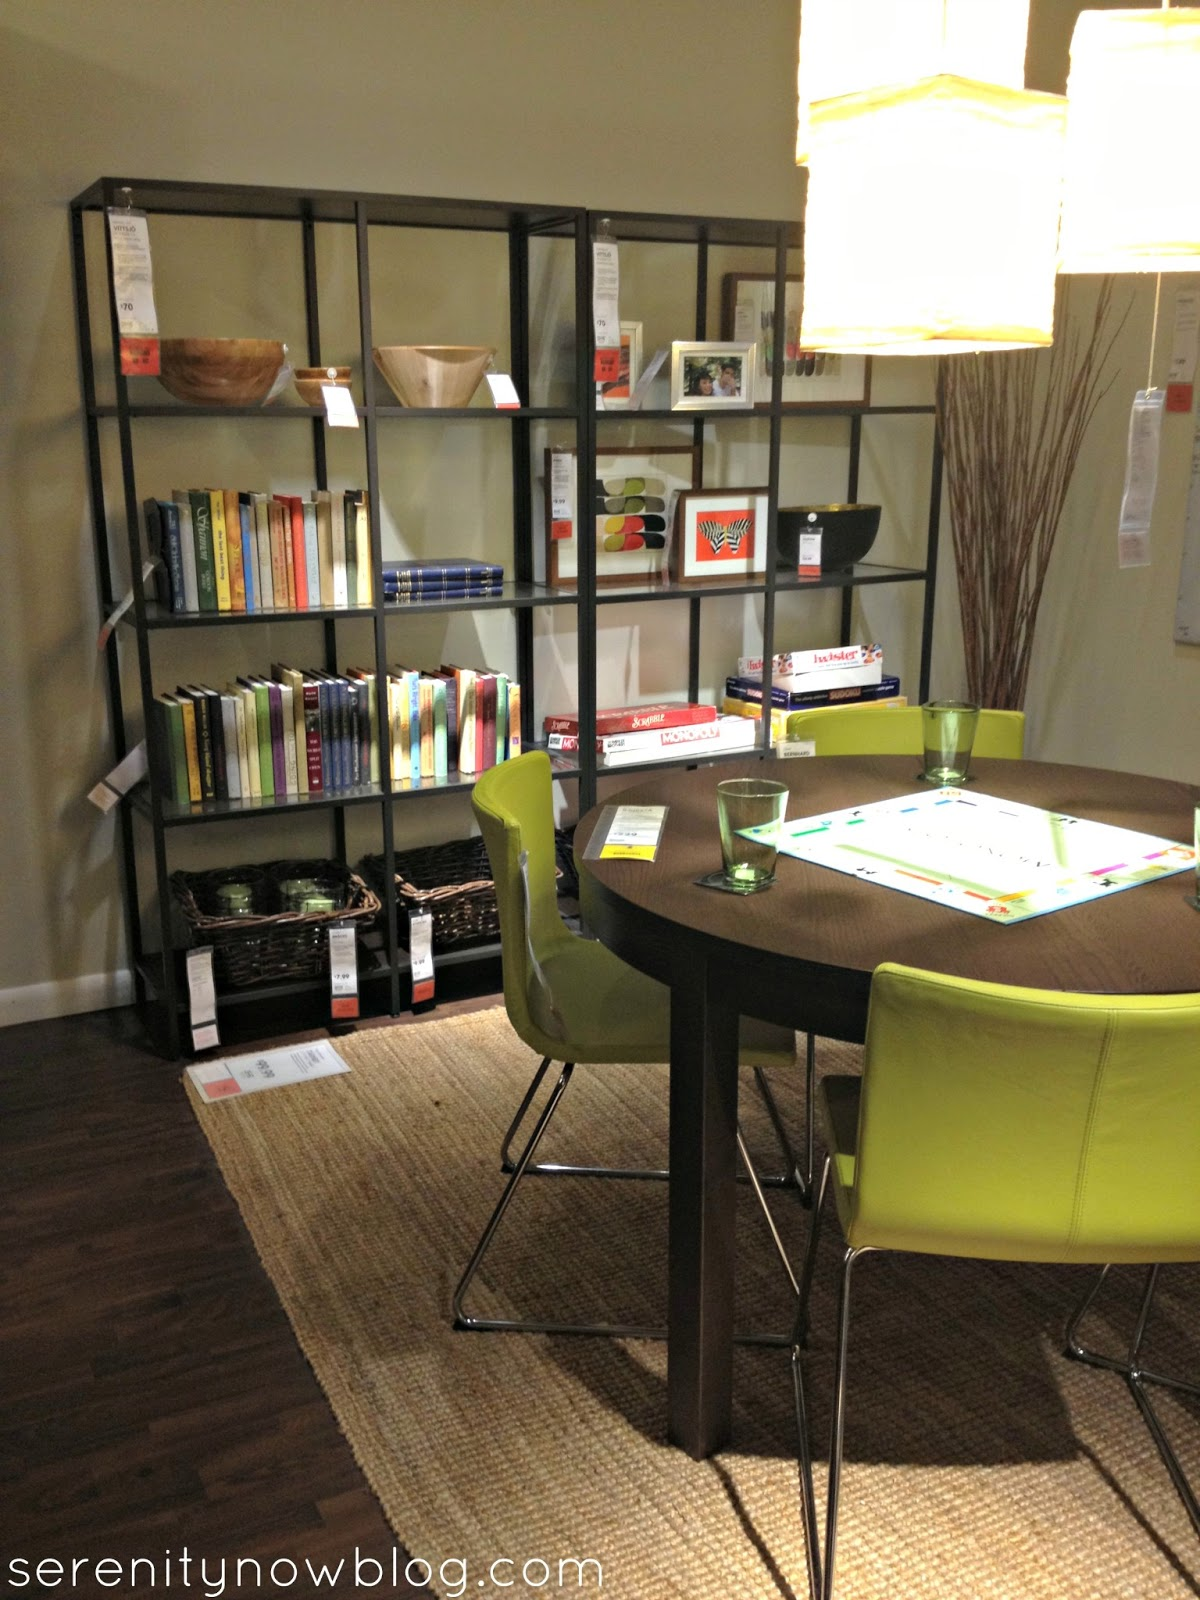 Home Decor Tips Chip Living Room: Serenity Now: IKEA Shopping Trip And Home Decor